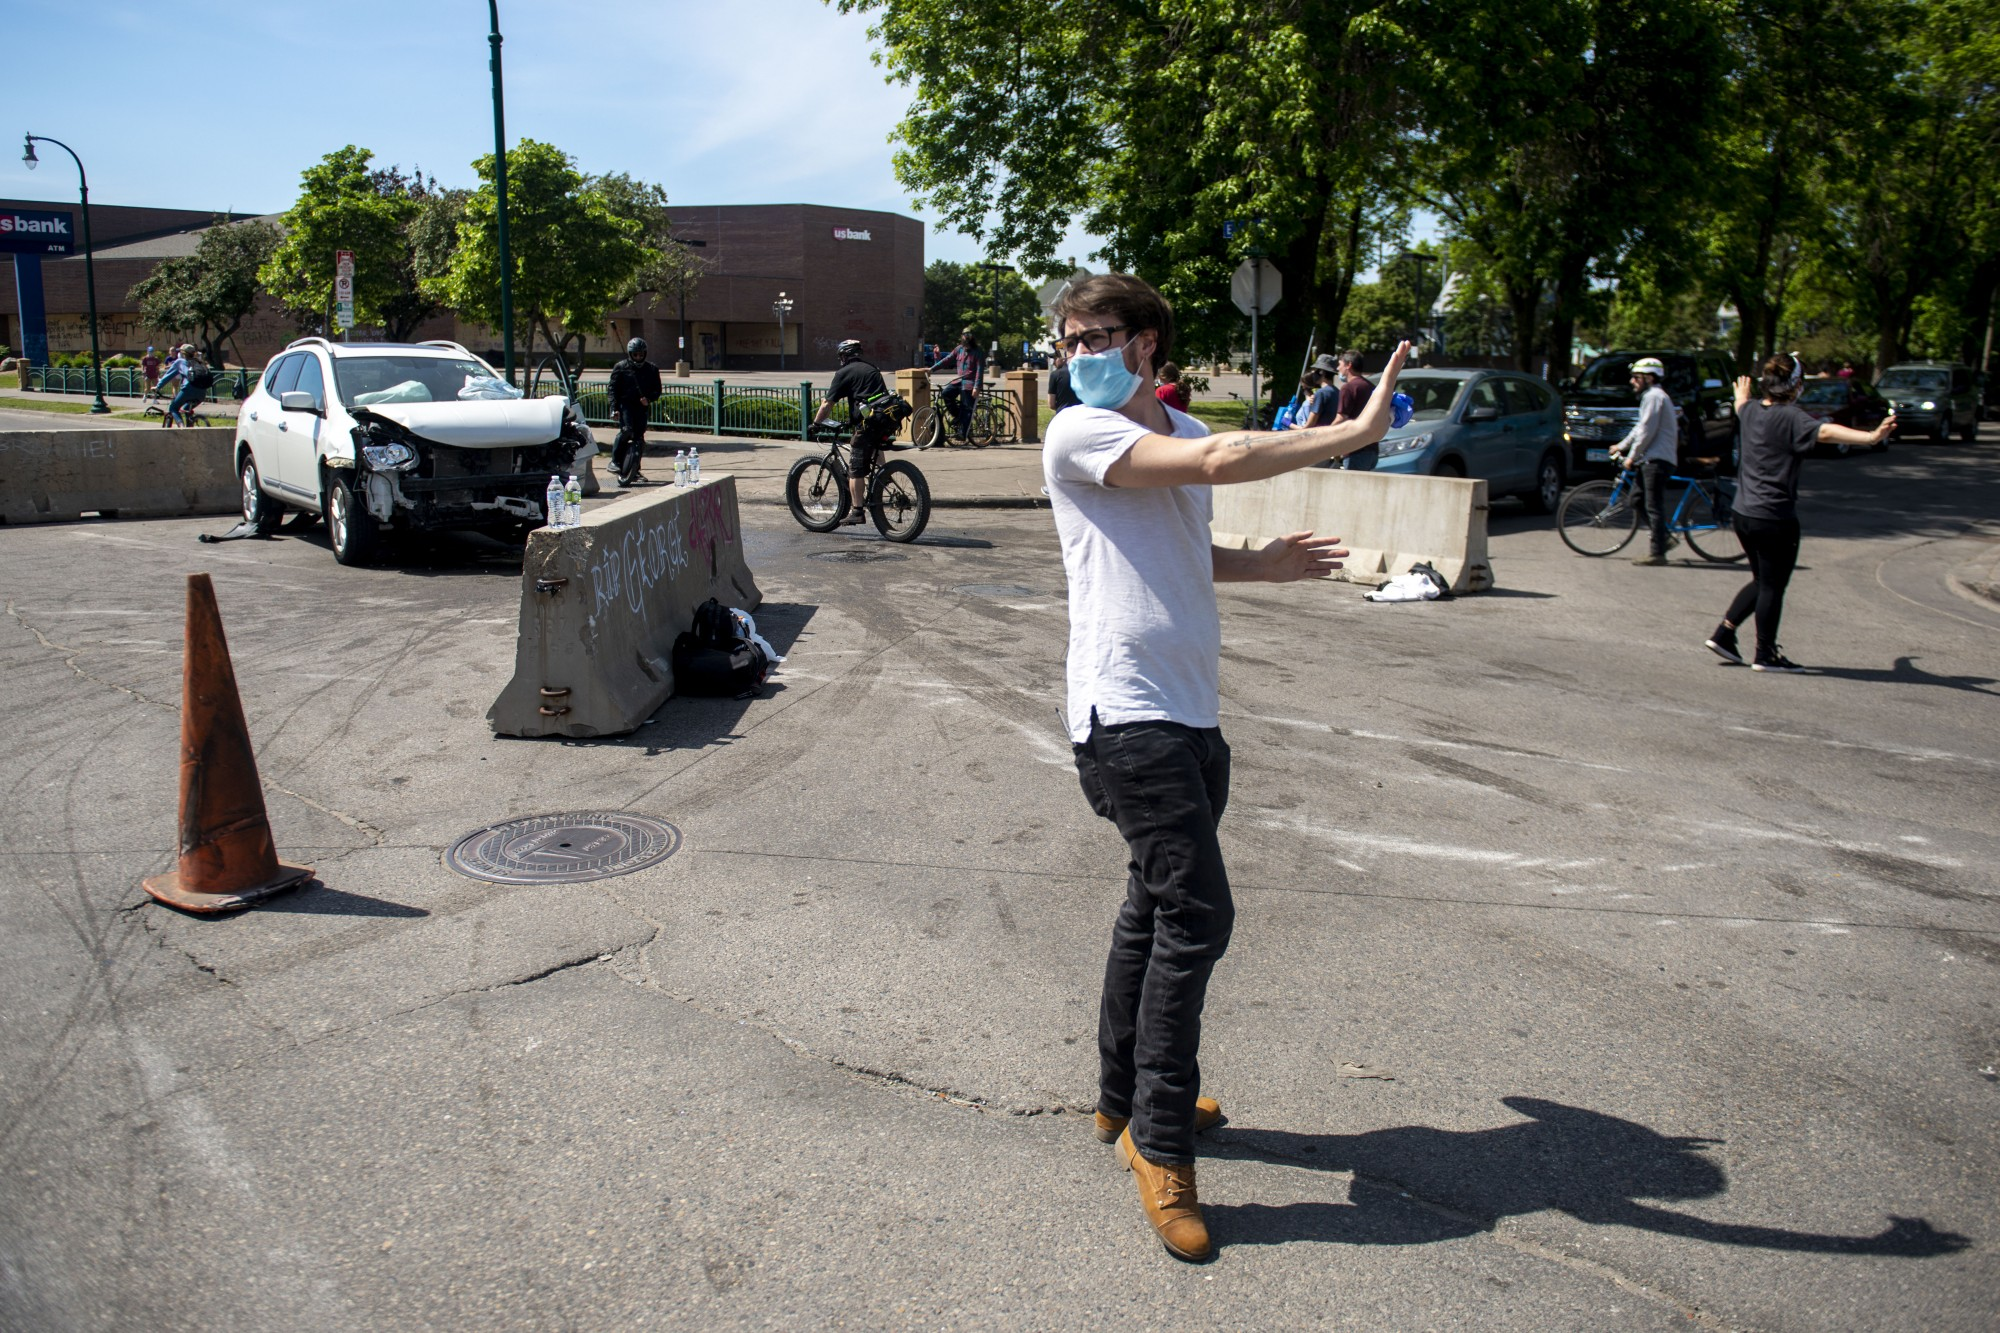 Zeke Scott helps to redirect traffic on Lake Street after an accident on Sunday, May 31.